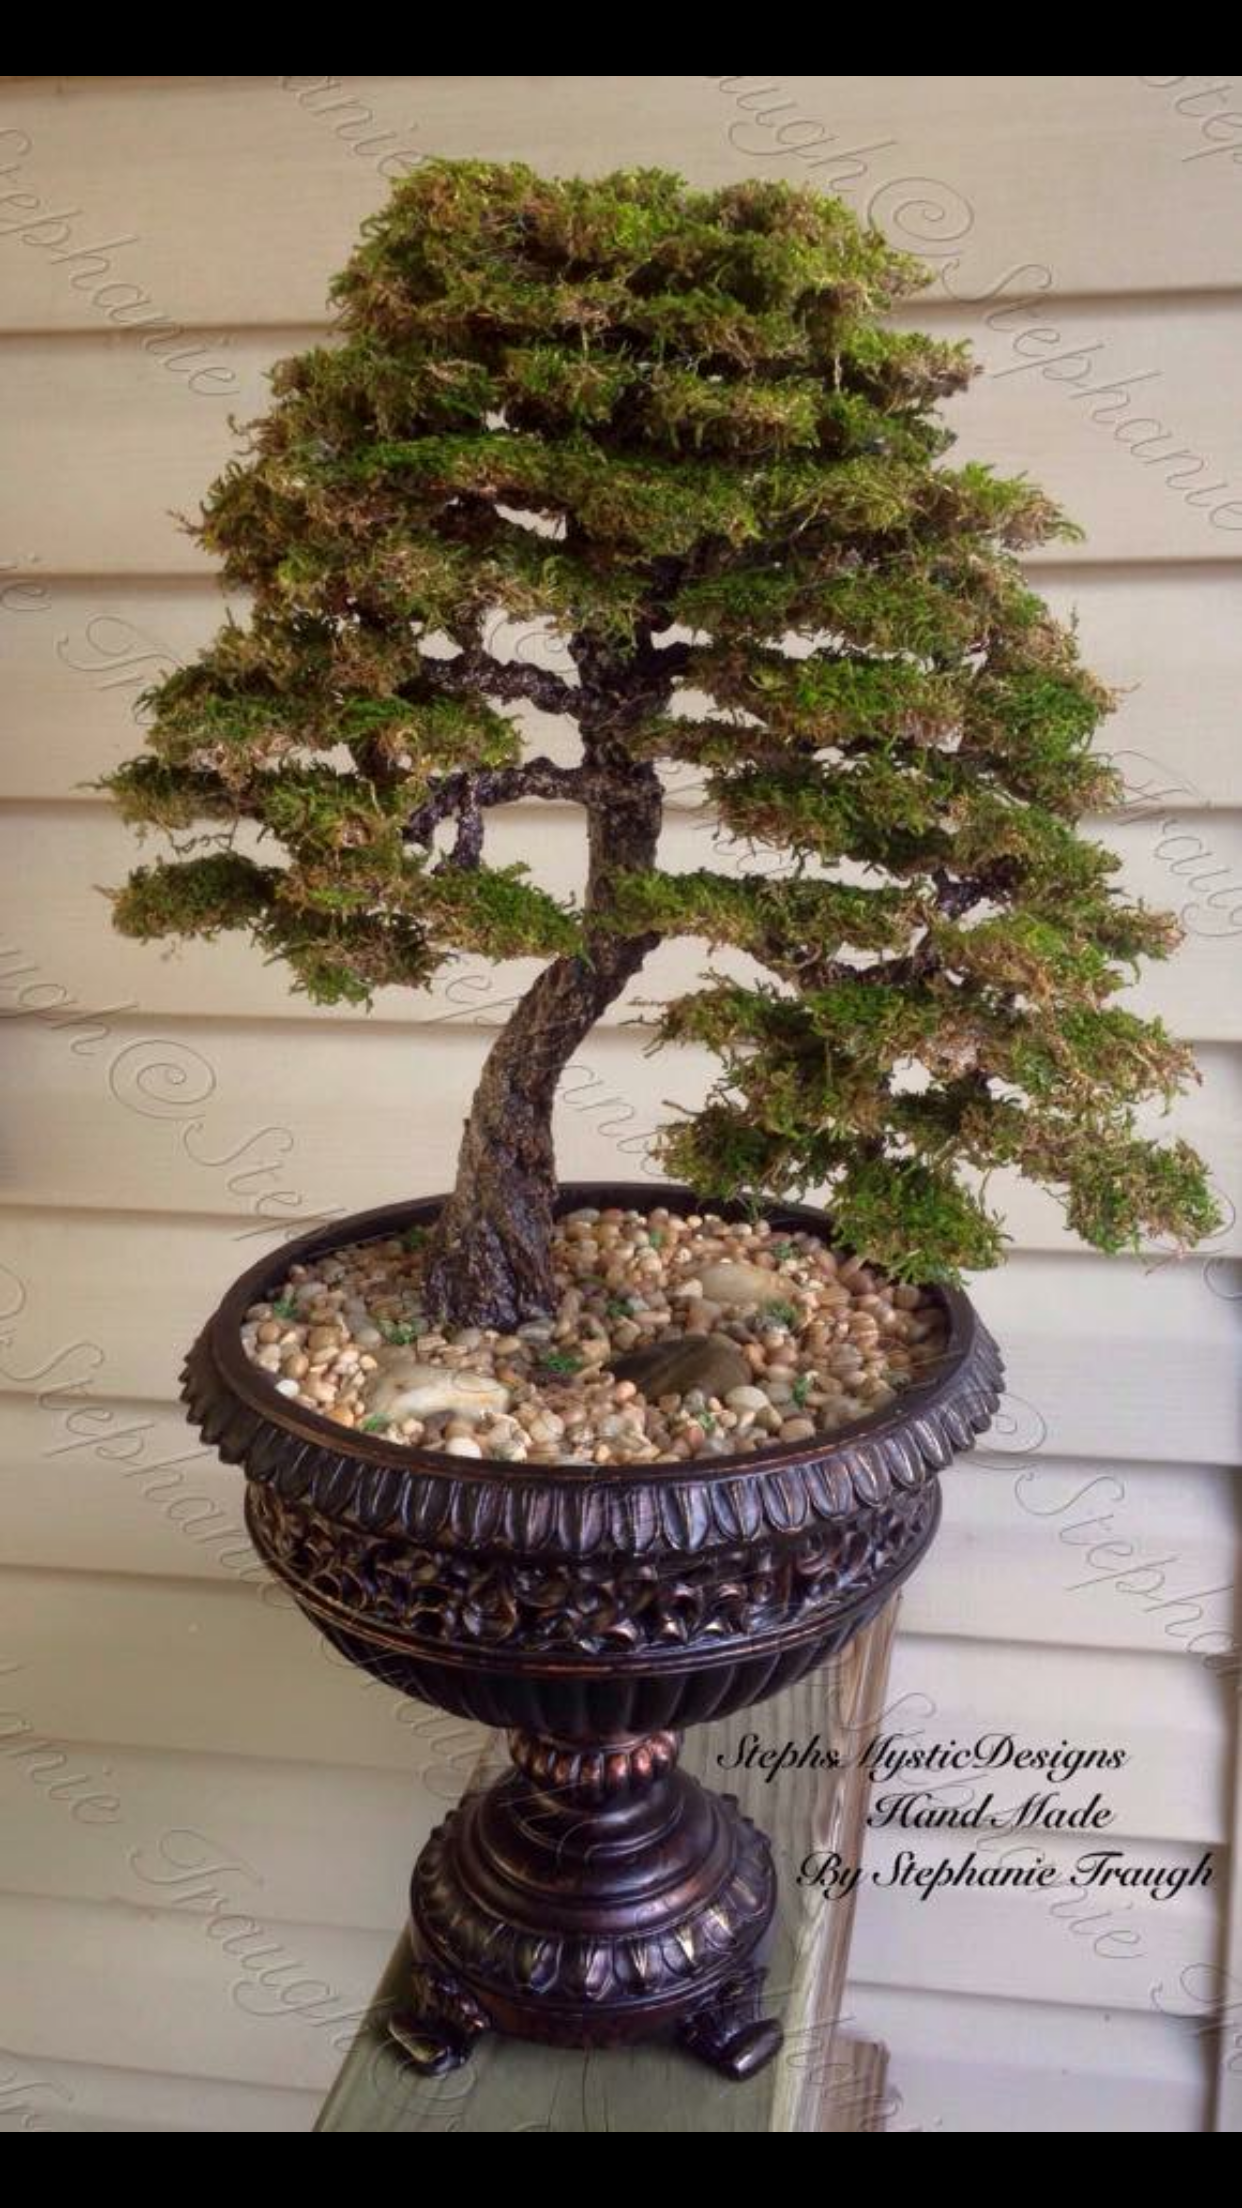 Wrapped Wire Bonsai Trees Wiring Diagram Land Wisteria Pin By Stephsmysticdesigns On Pinterest Oak Tree